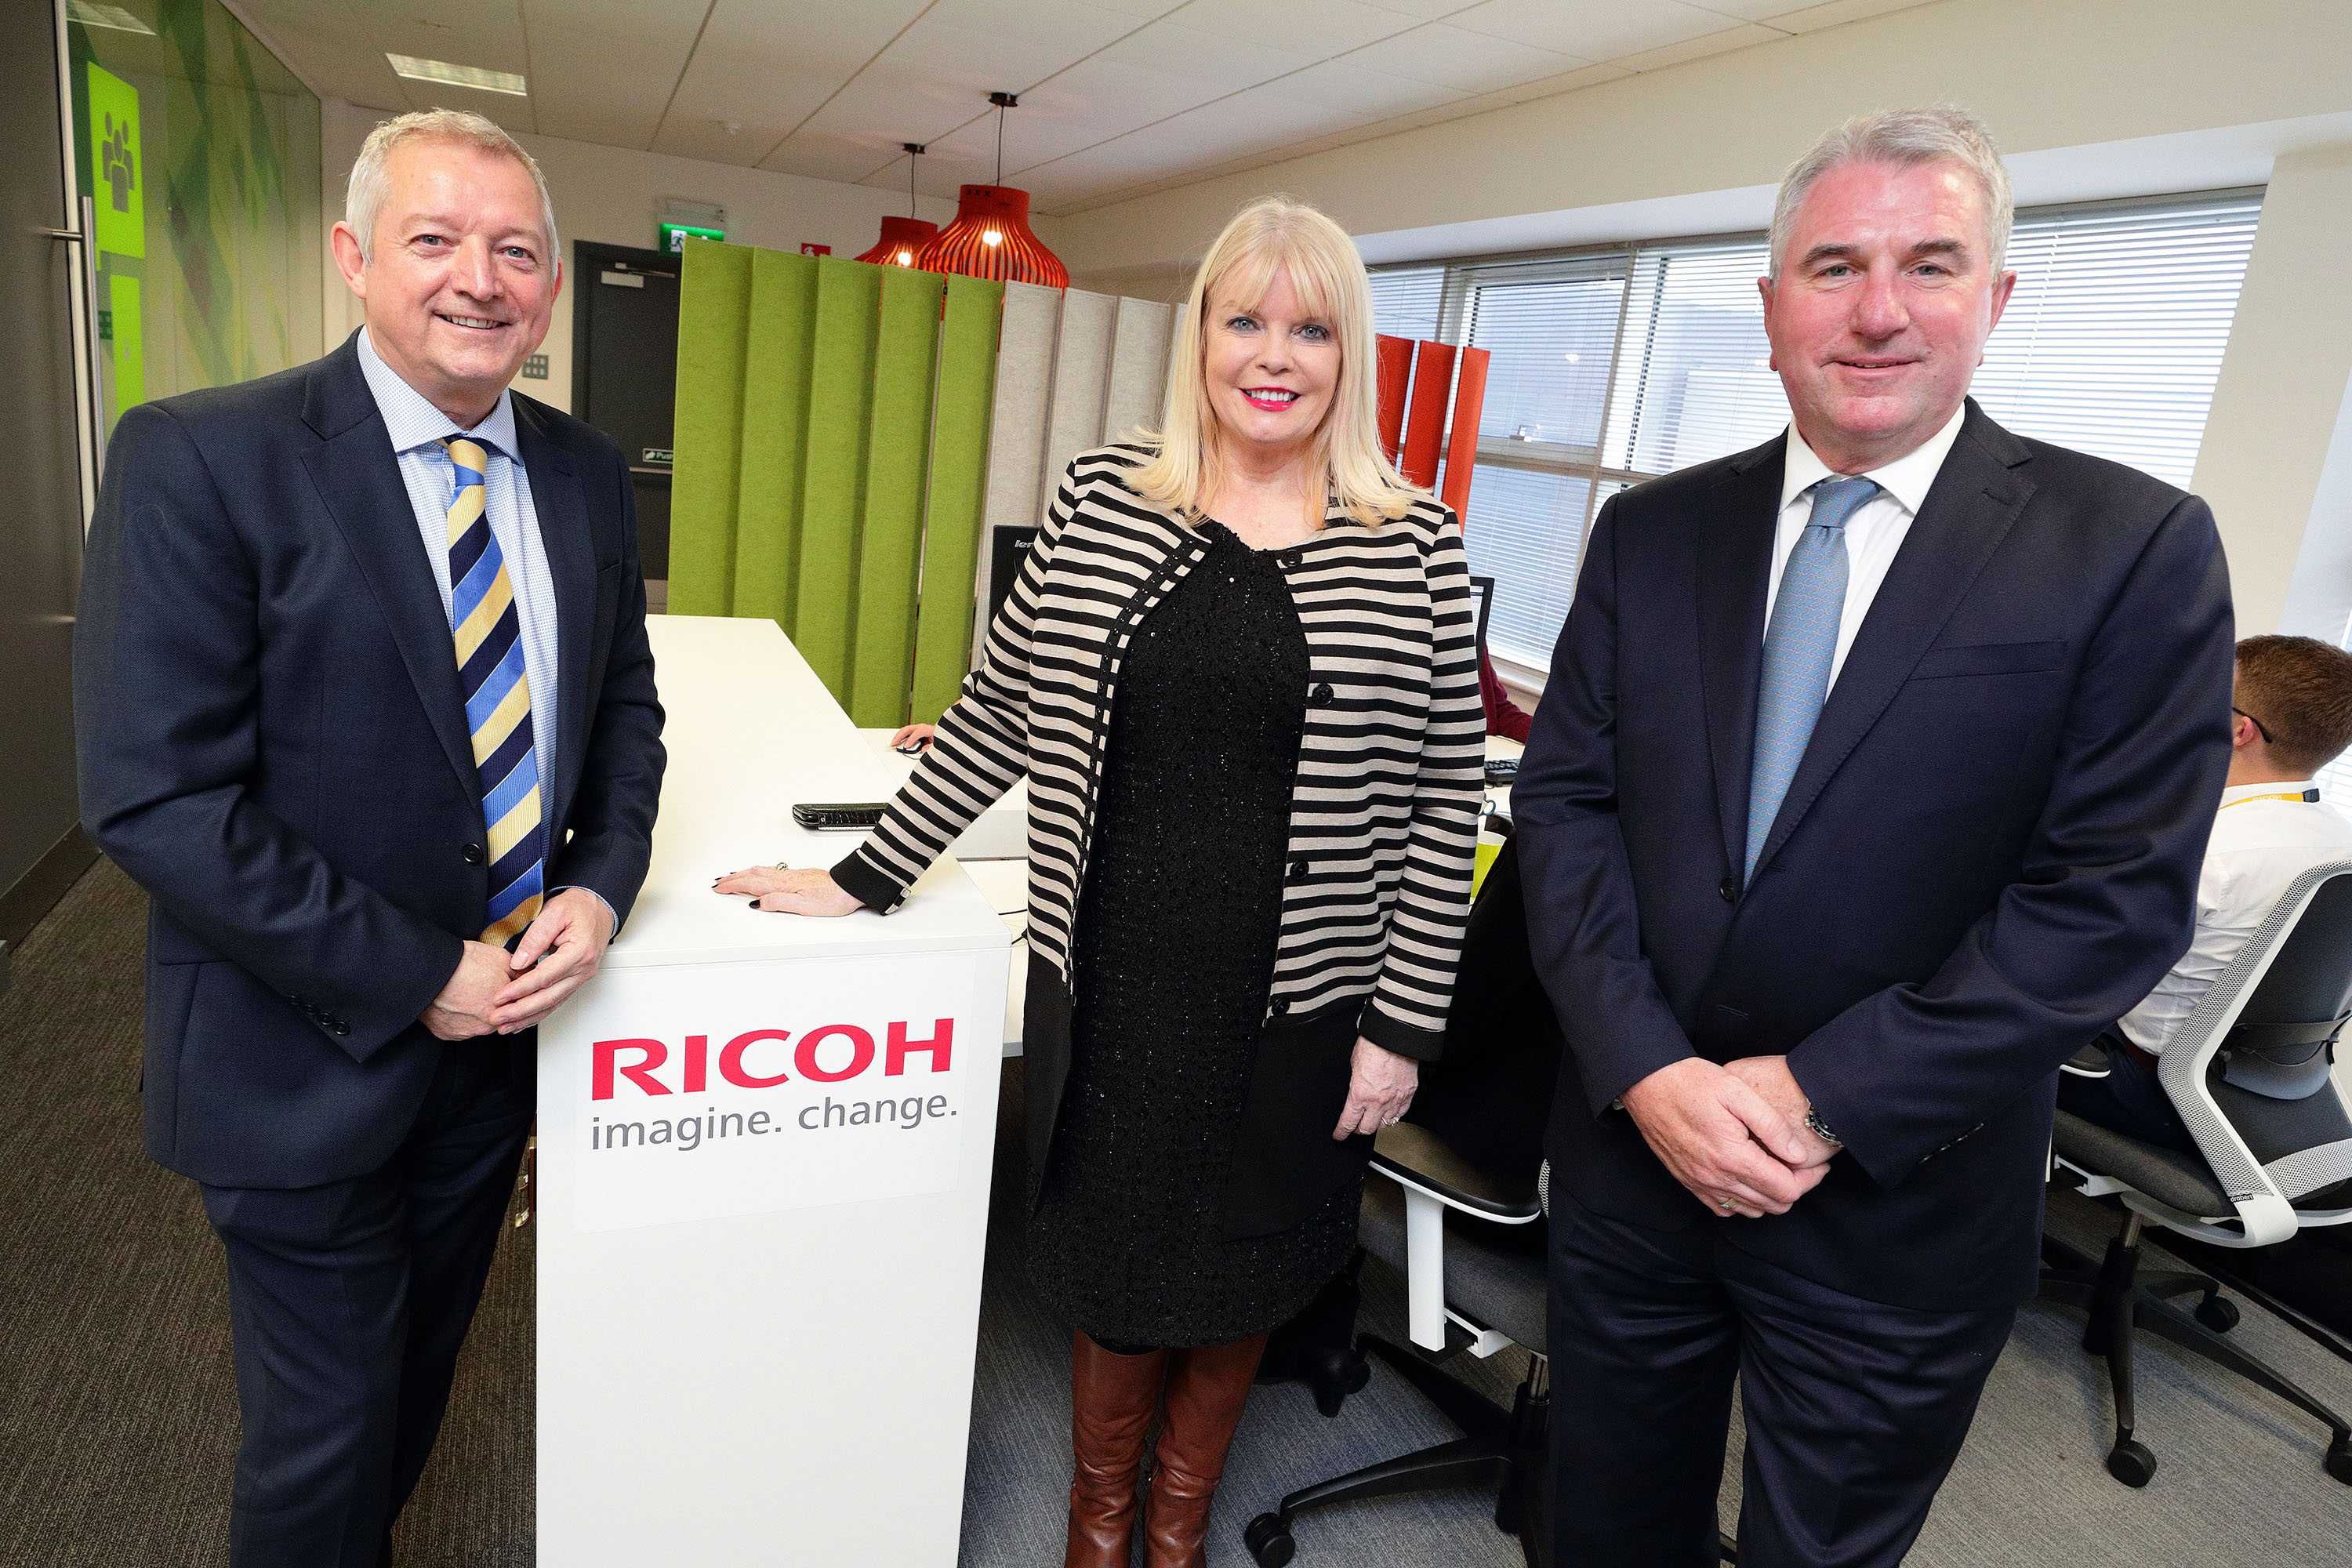 (3)	Pictured at the opening of Ricoh's new Irish headquarters in Airside Business Park, Swords, Co. Dublin are (L to R) Gary Hopwood, General Manager, Ricoh Ireland; Minister for Jobs, Enterprise & Innovation, Mary Mitchell O'Connor TD; and Phil Keoghan, CEO, Ricoh UK and Ireland